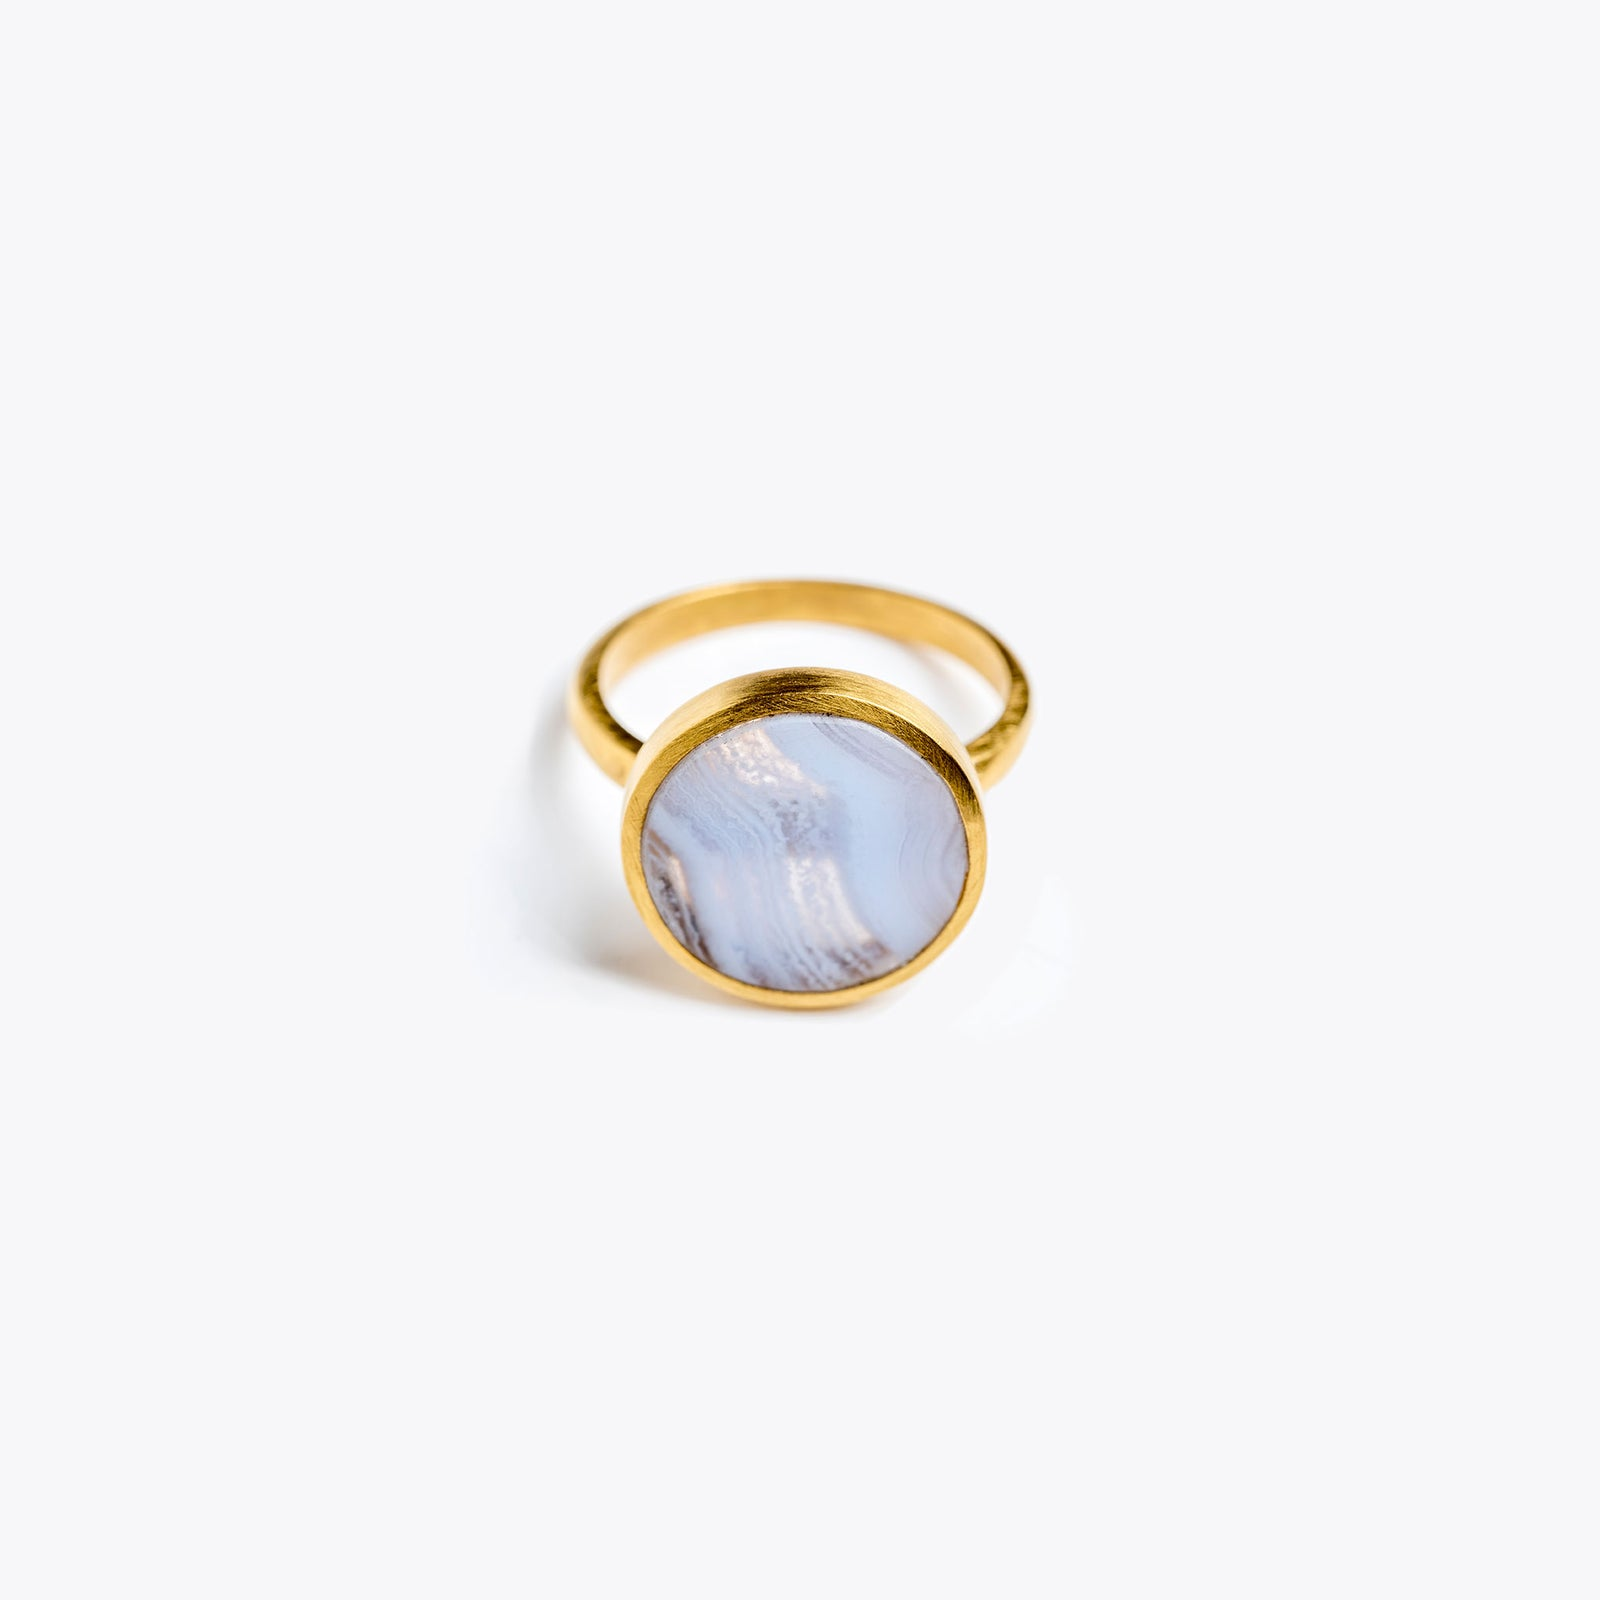 Wanderlust Life Ethically Handmade jewellery made in the UK. Minimalist gold and fine cord jewellery. solar ring, blue lace agate